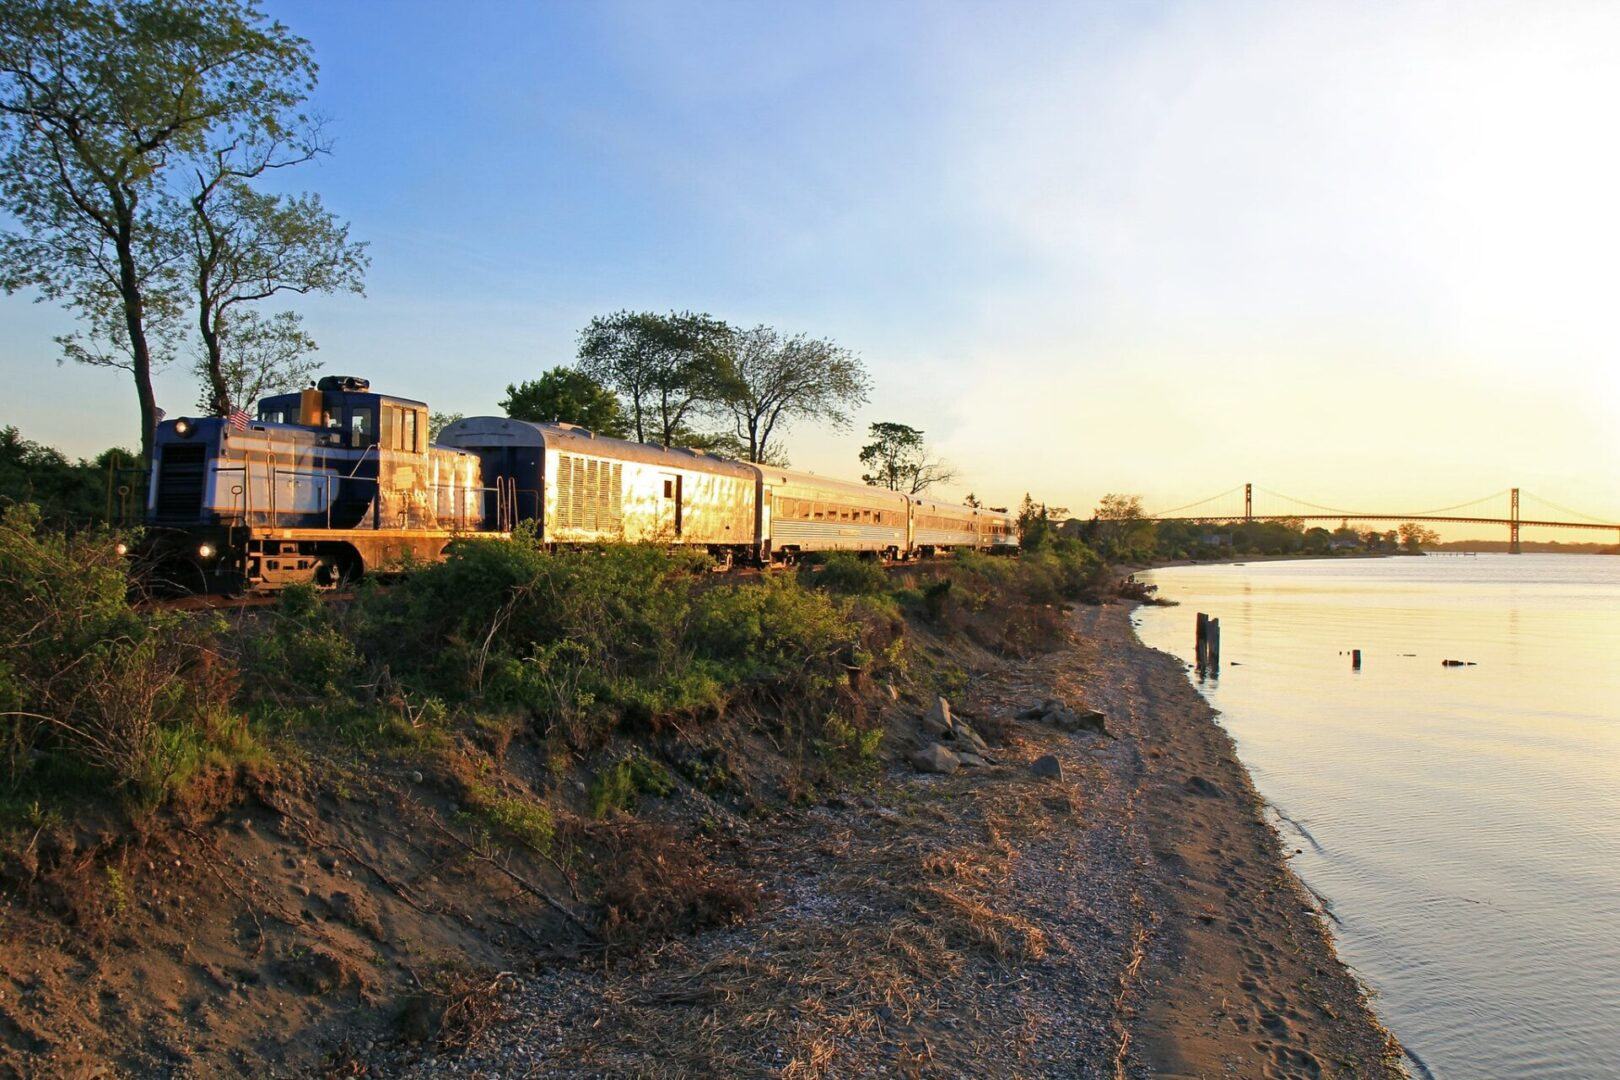 Grand Bellevue train passing by the bay in Rhode Island